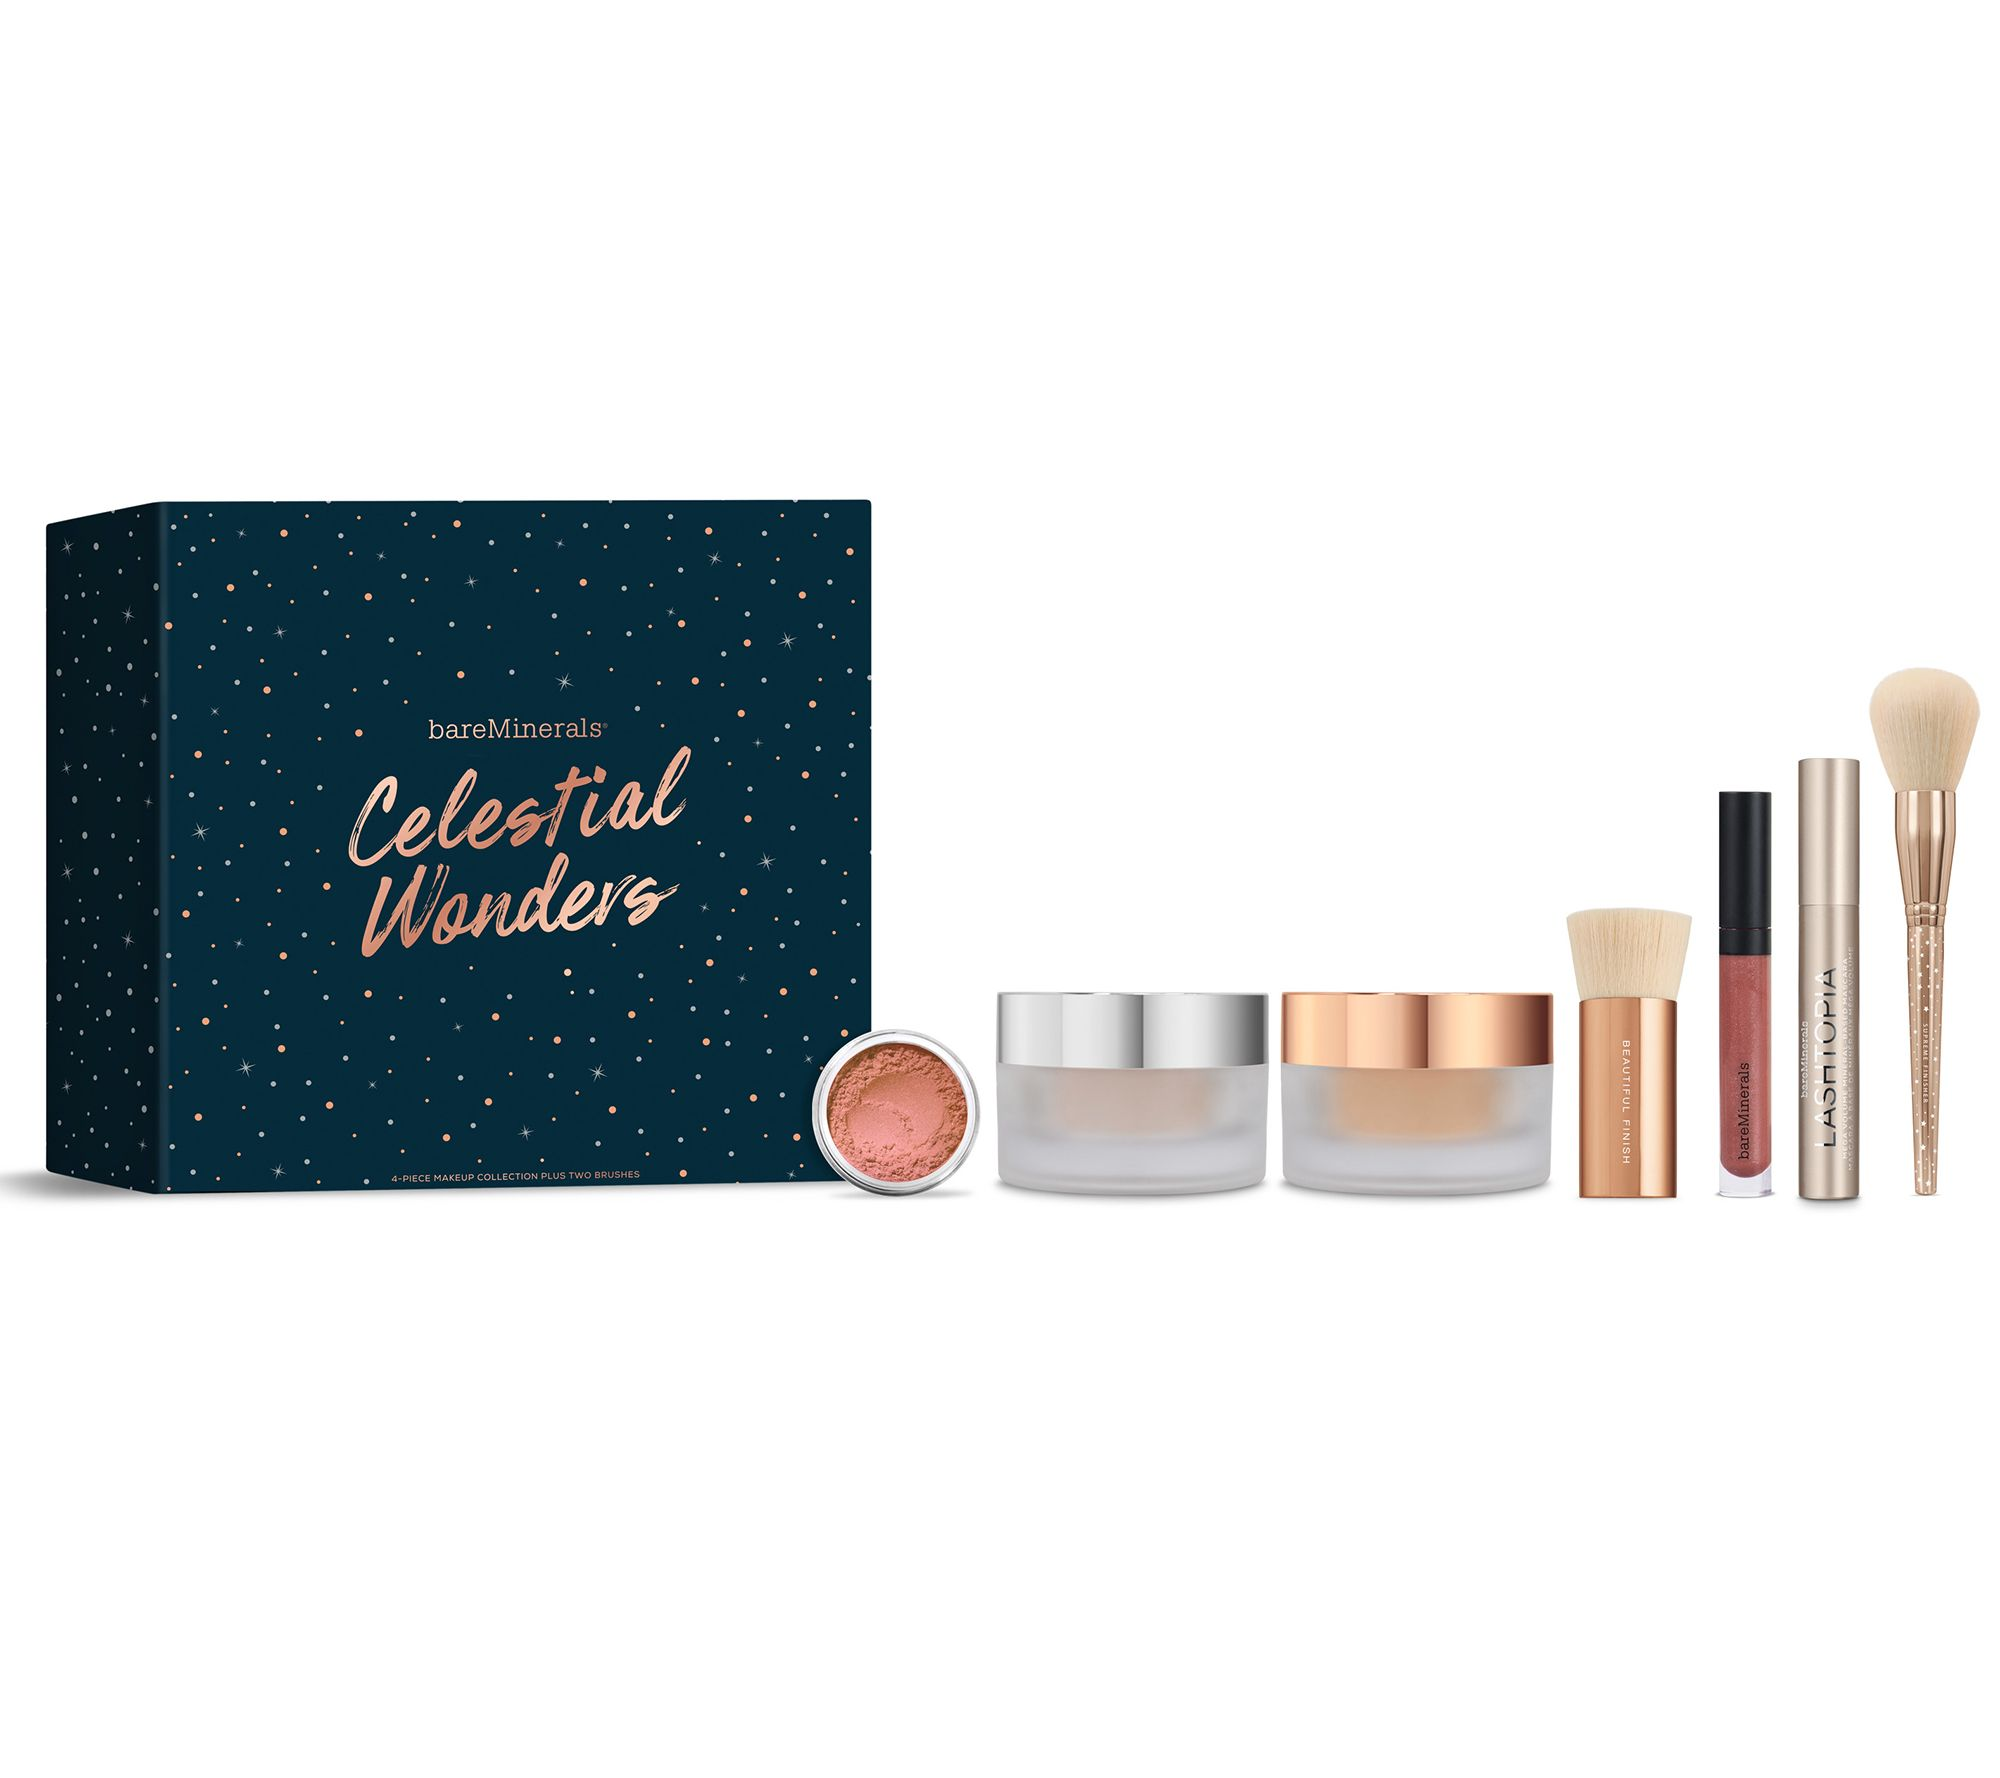 Bareminerals Celestial Wonders Deluxe Original Foundation Kit Page